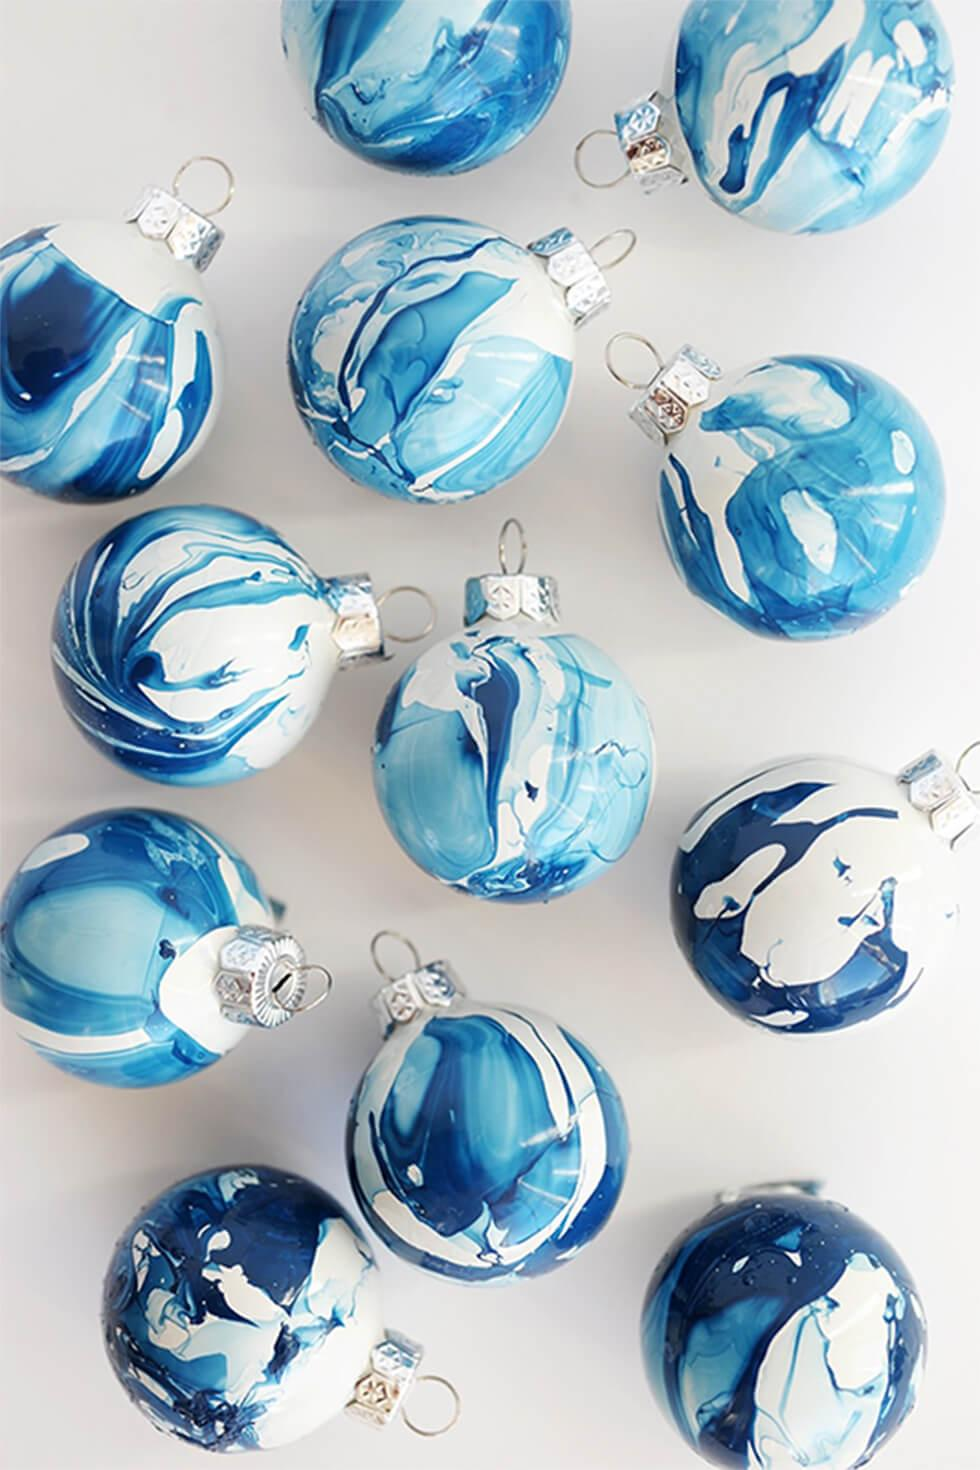 DIY blue and white marbled Christmas ornaments